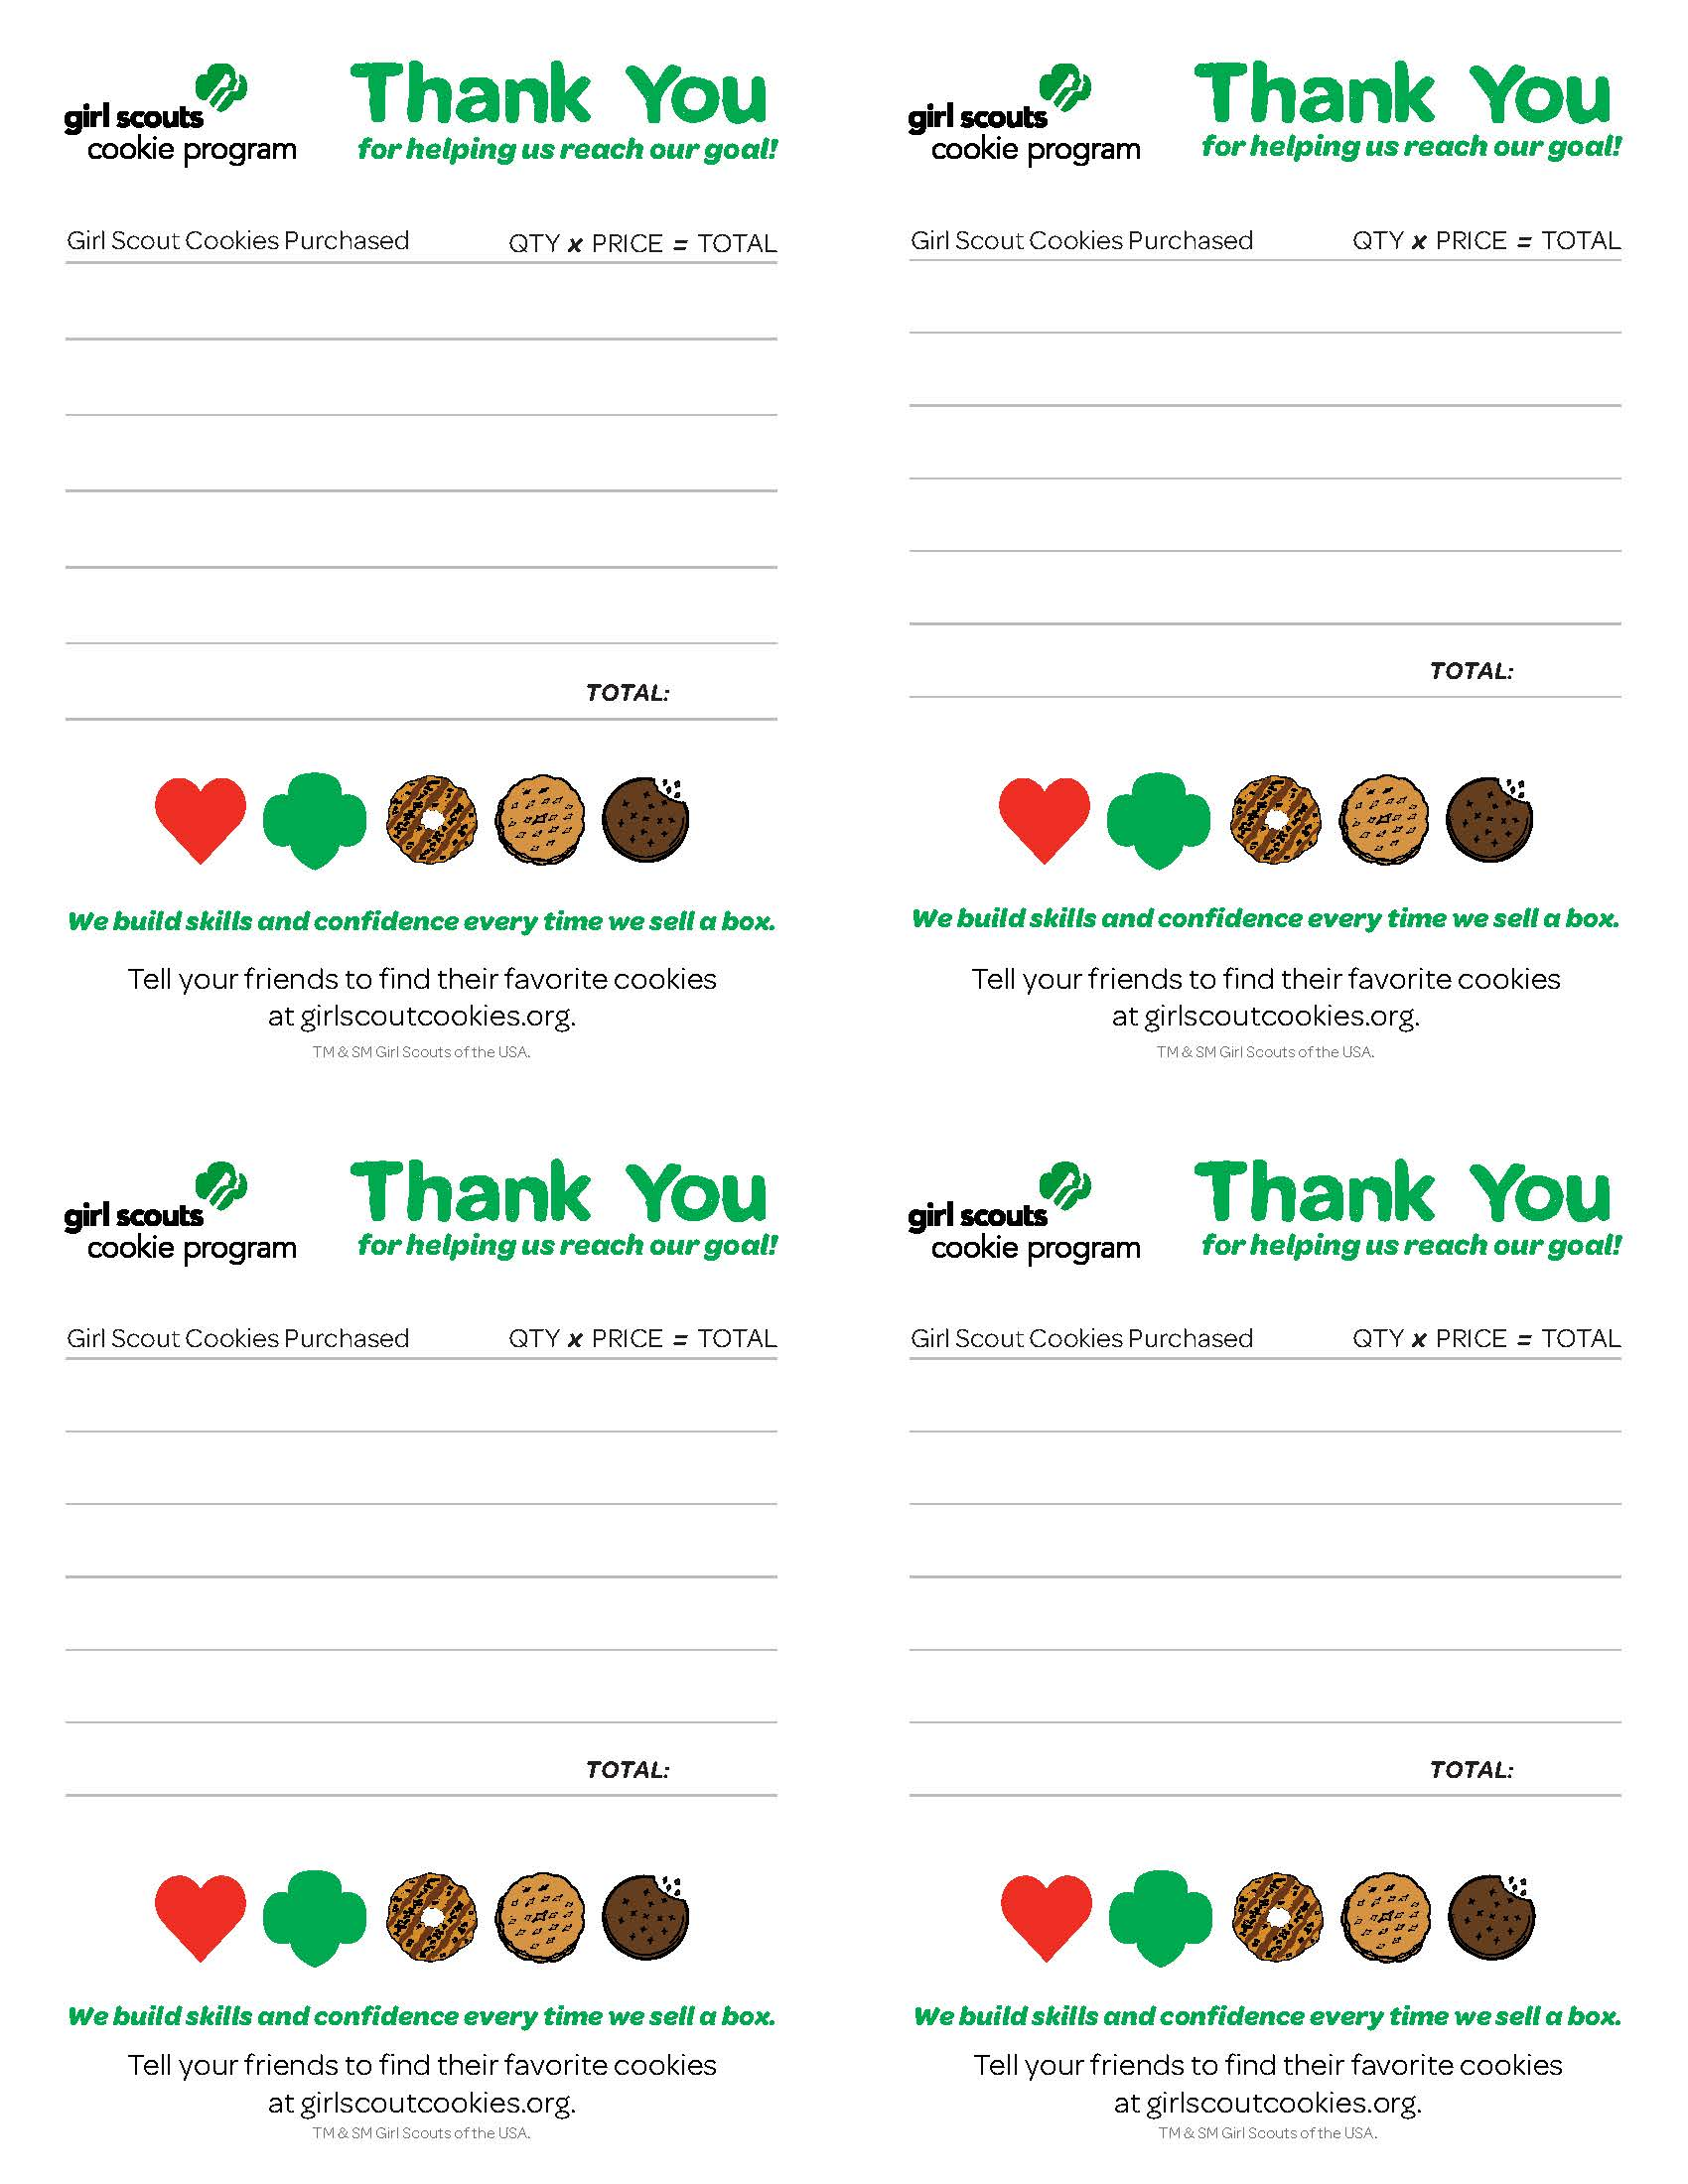 Cookies Digital Cookie Girl Scouts Of Southeastern New England